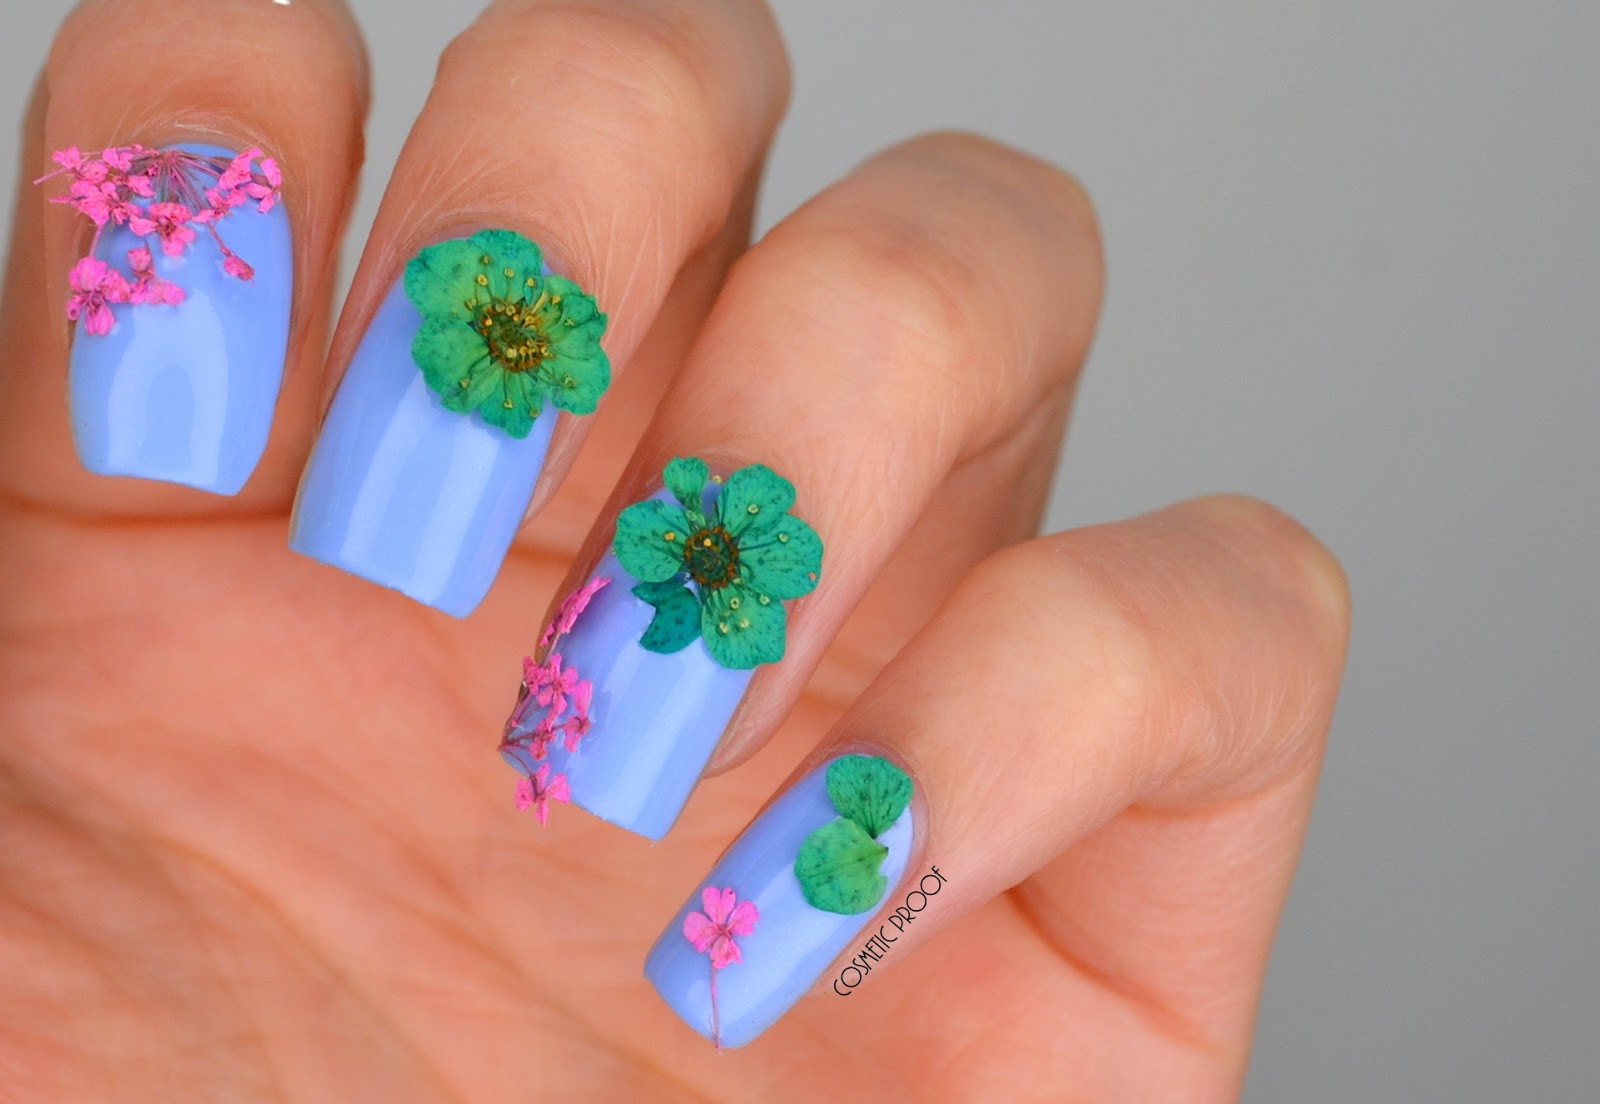 NAILS | Essie Bikini So Teeny Dried Flower Spring Nail Art ...